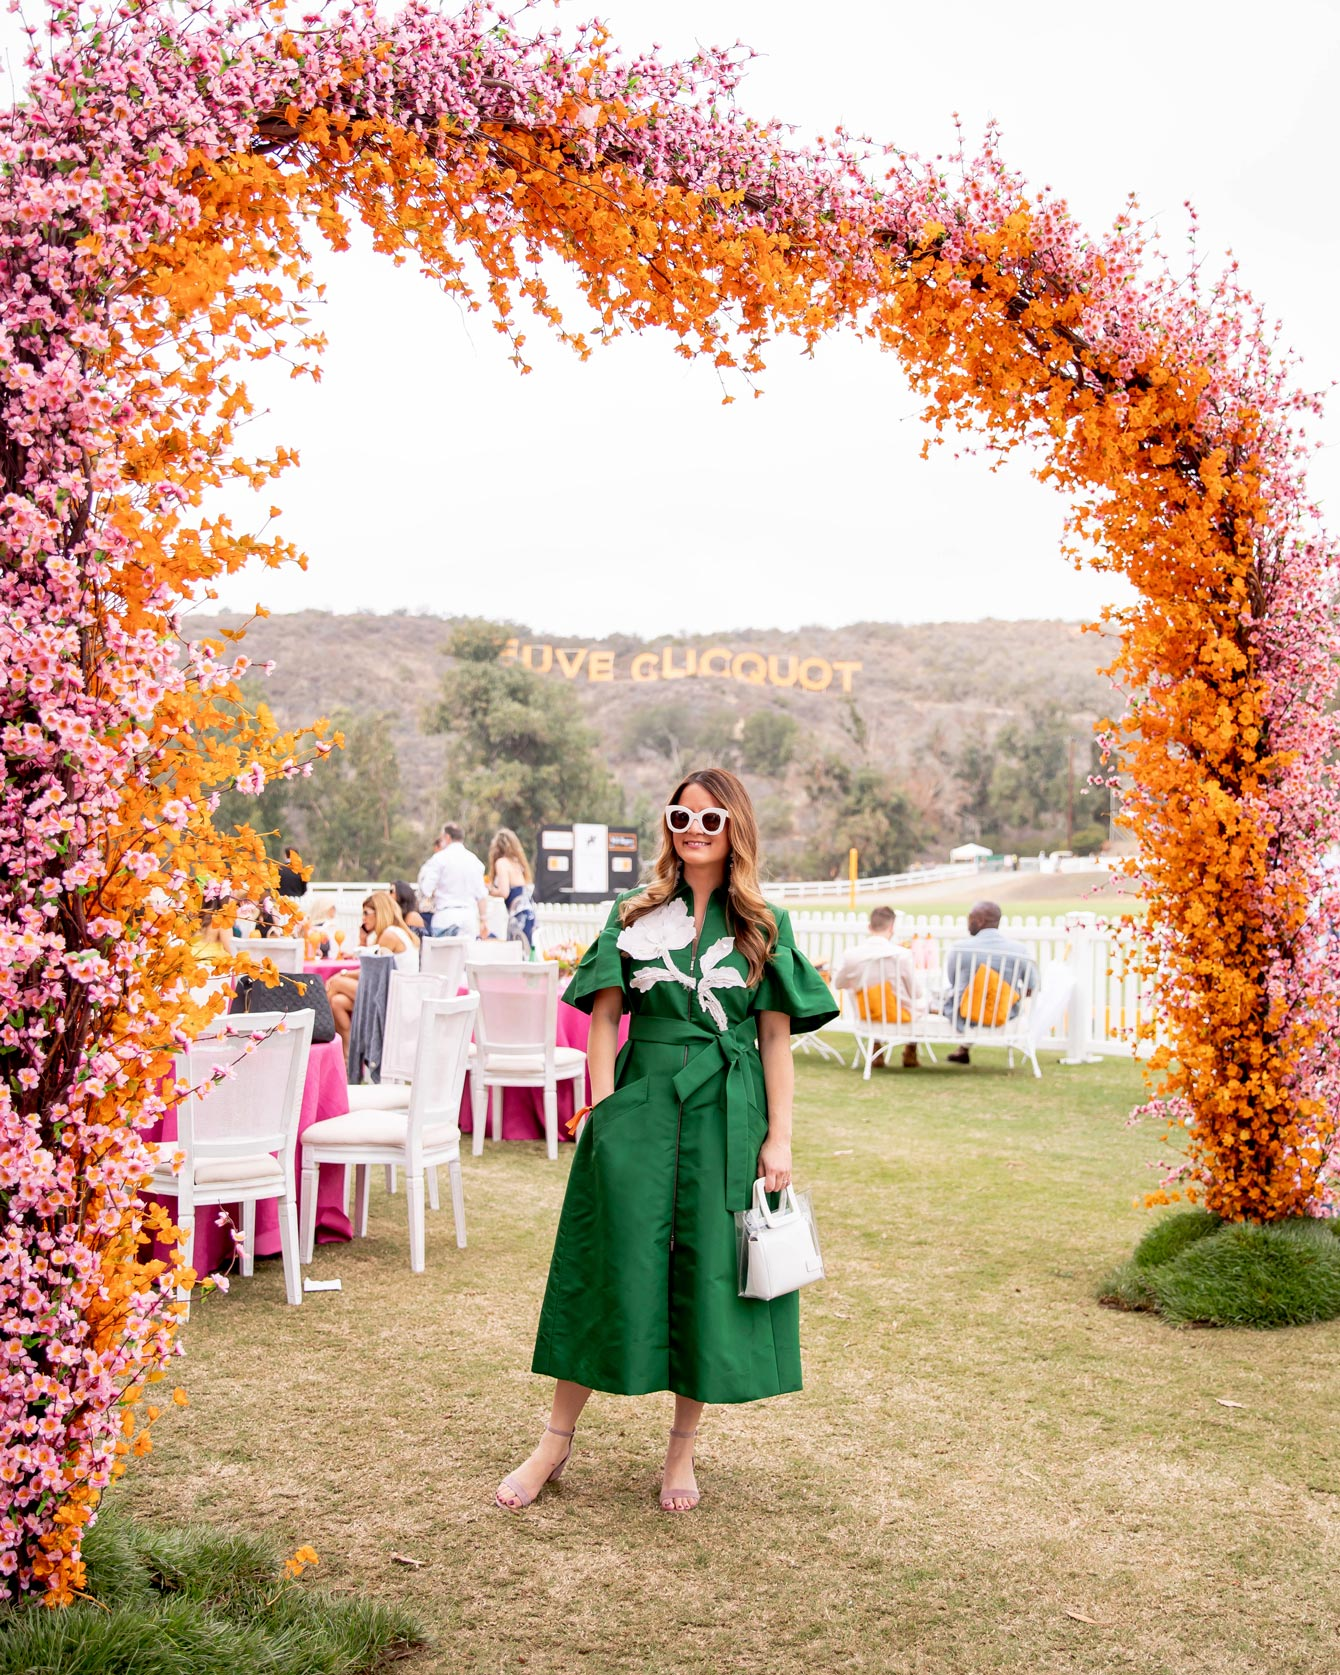 Veuve Clicquot Rose Garden Tickets